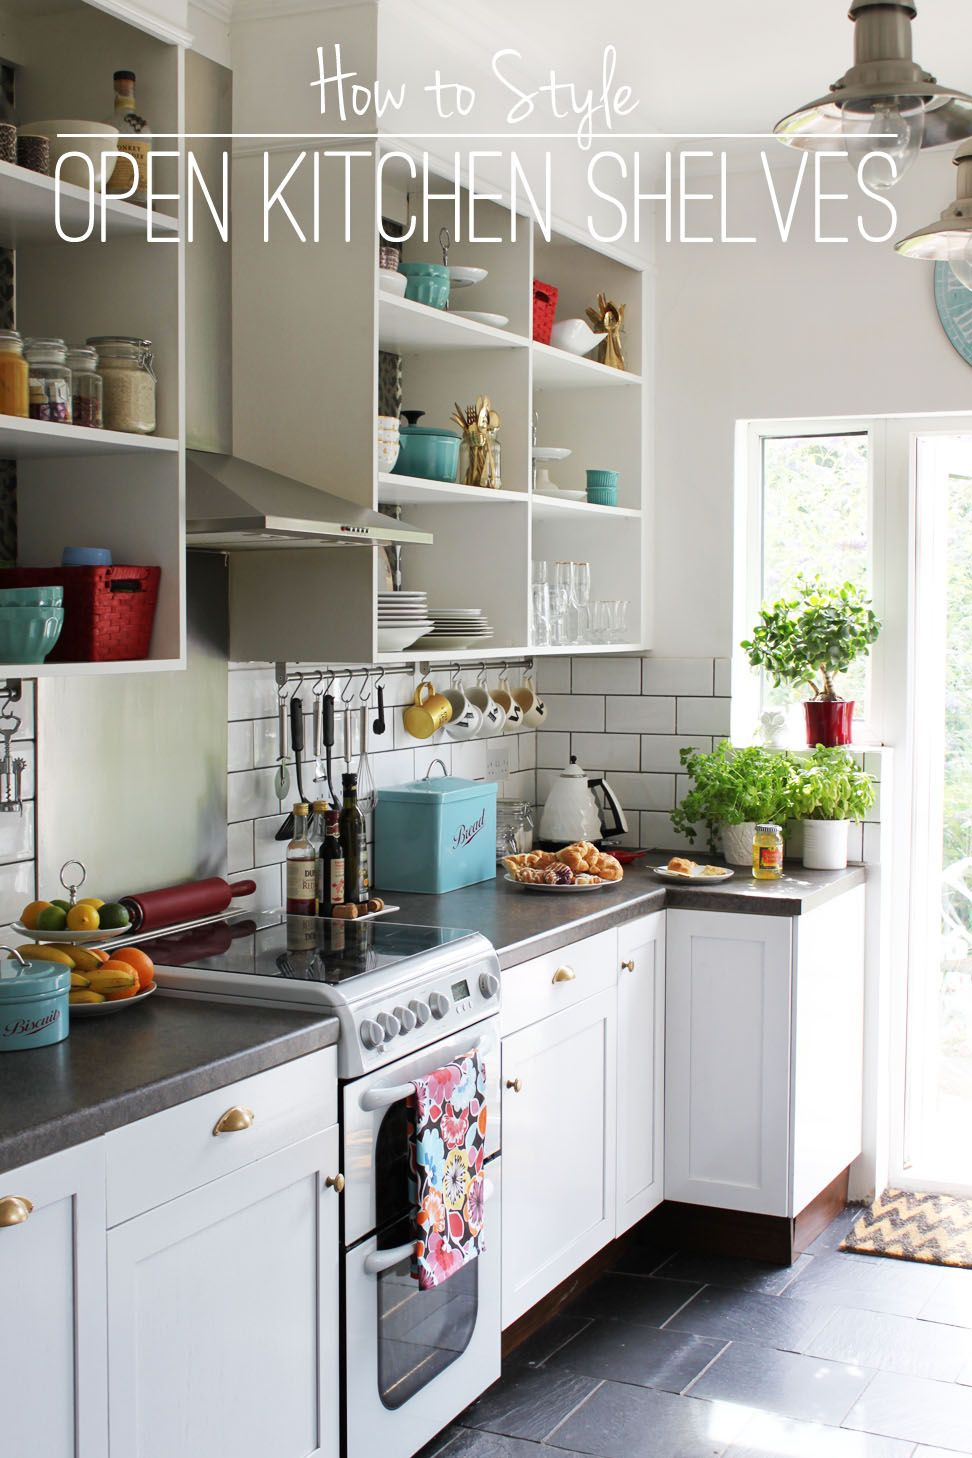 Open Kitchen Open Kitchen Shelves Yes Makes You Wanna Keep Them Clean And